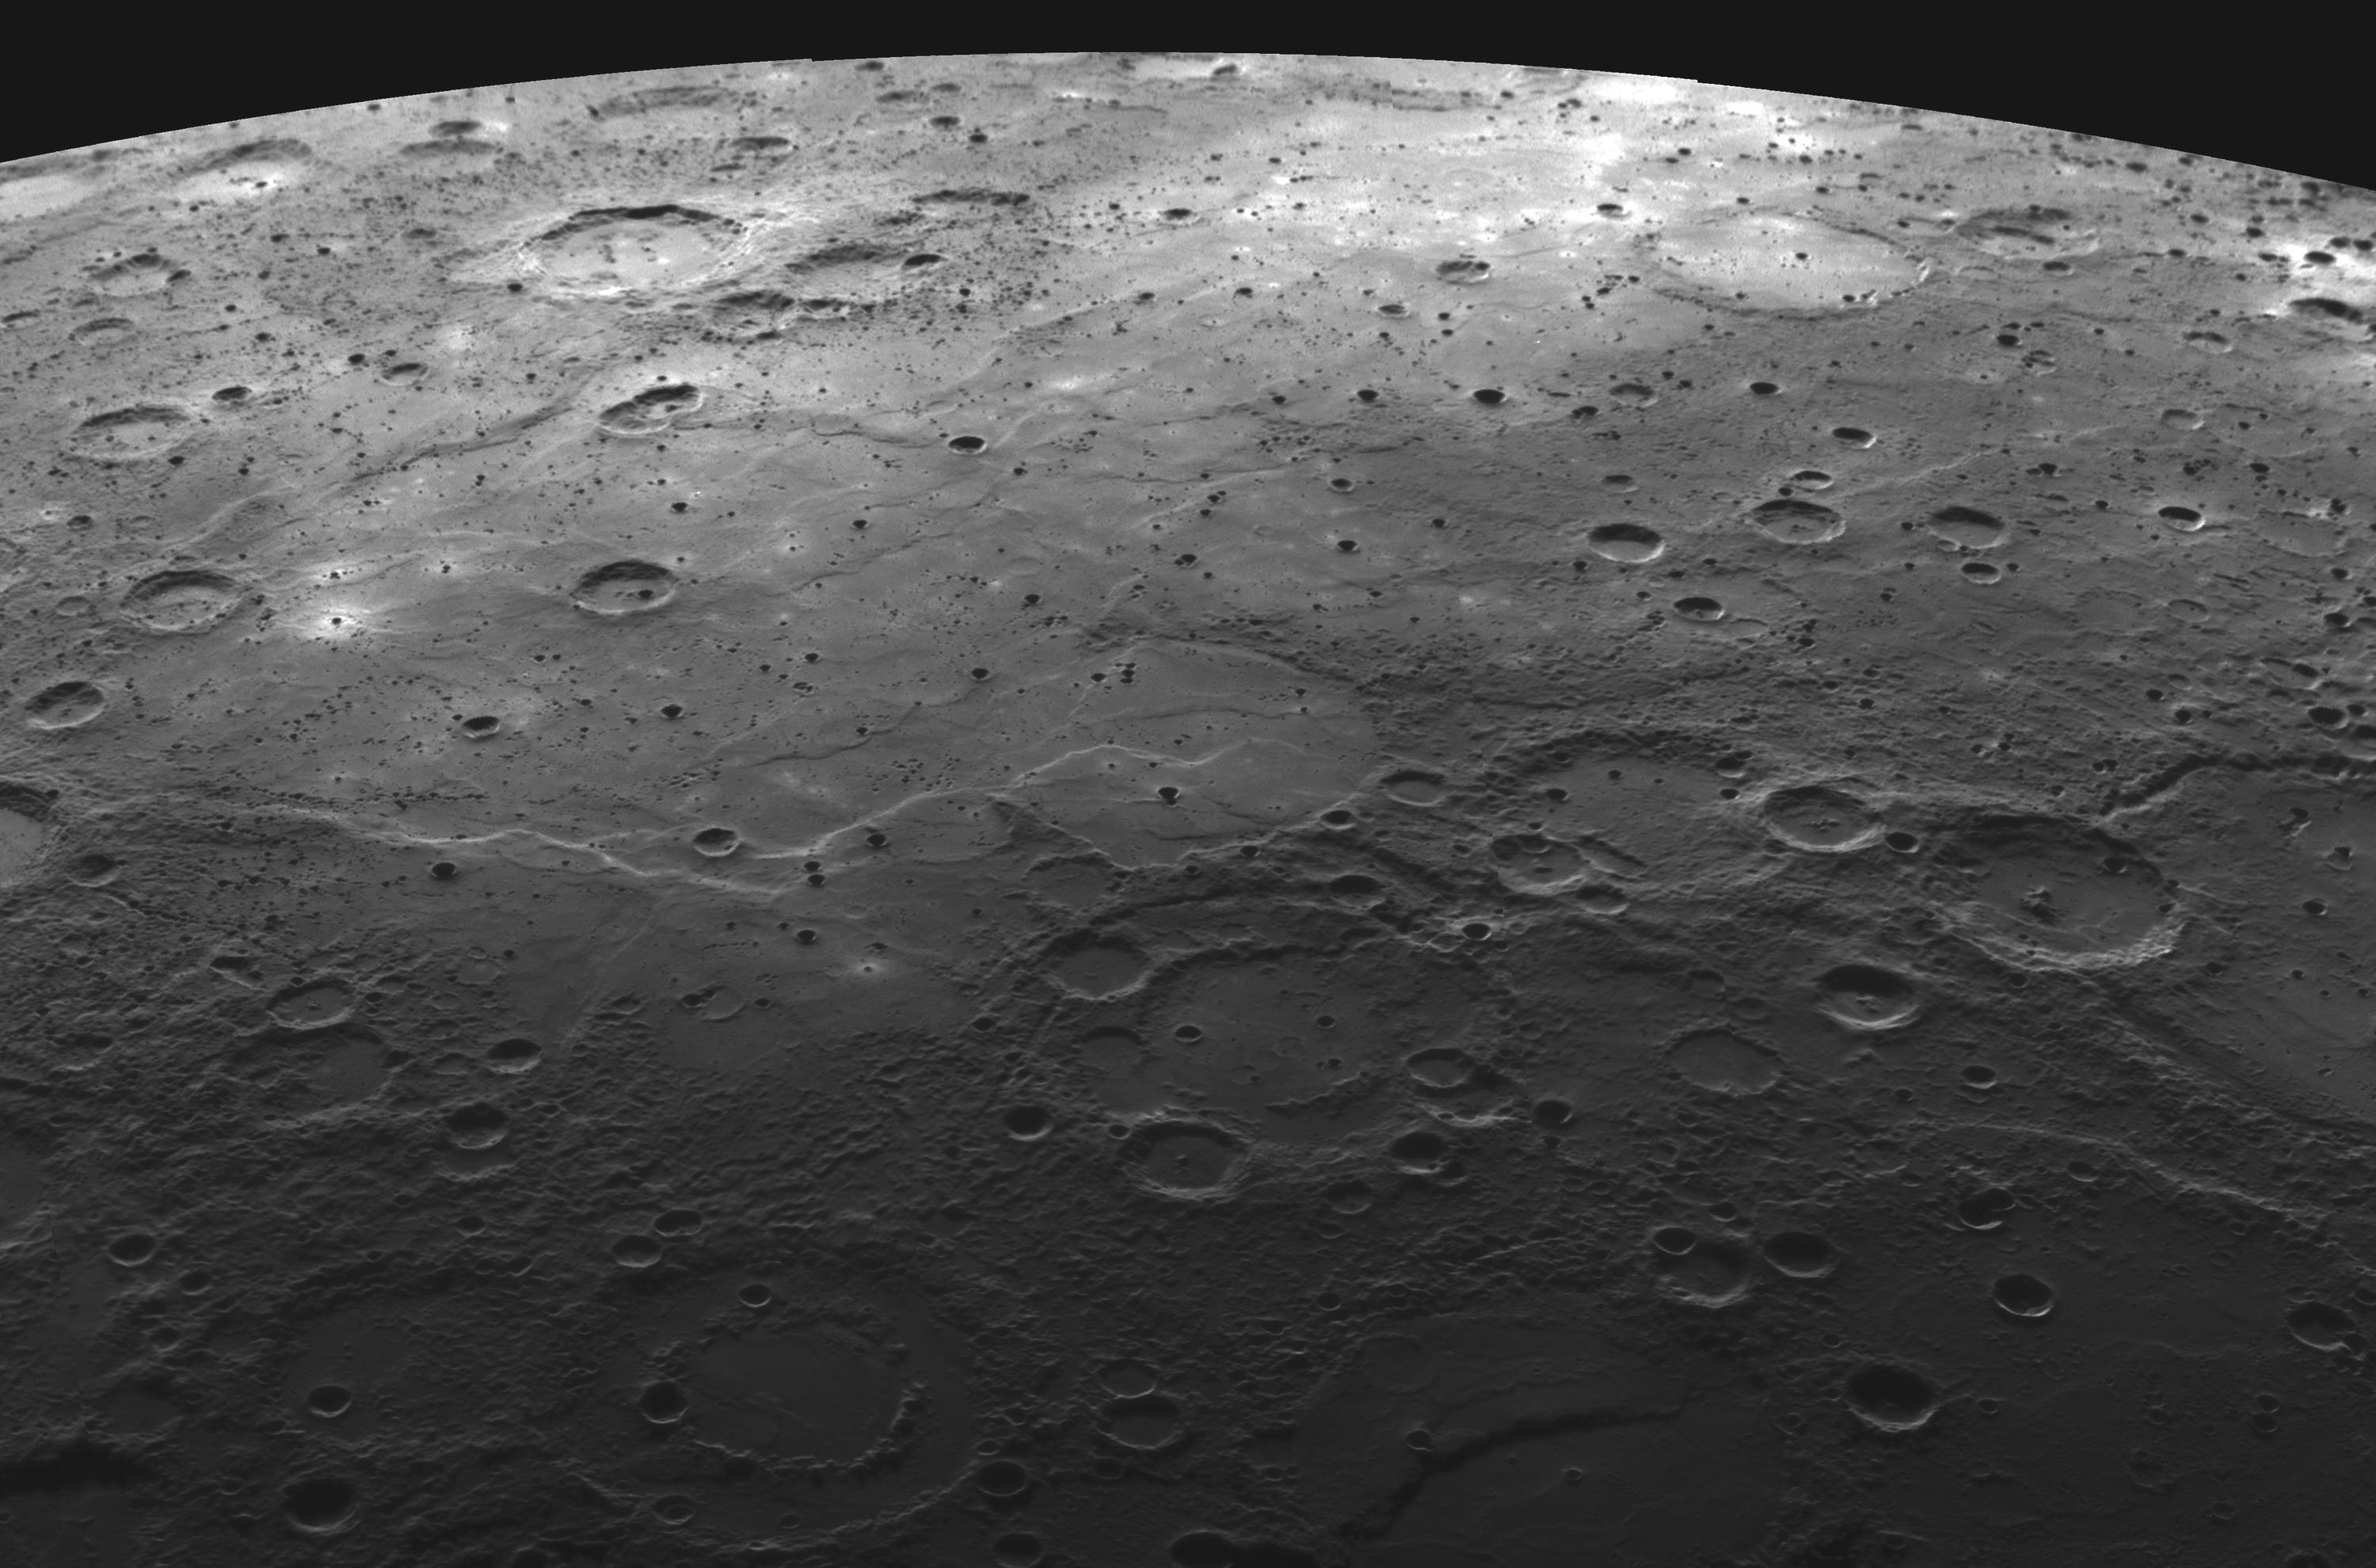 planets moons craters - photo #3